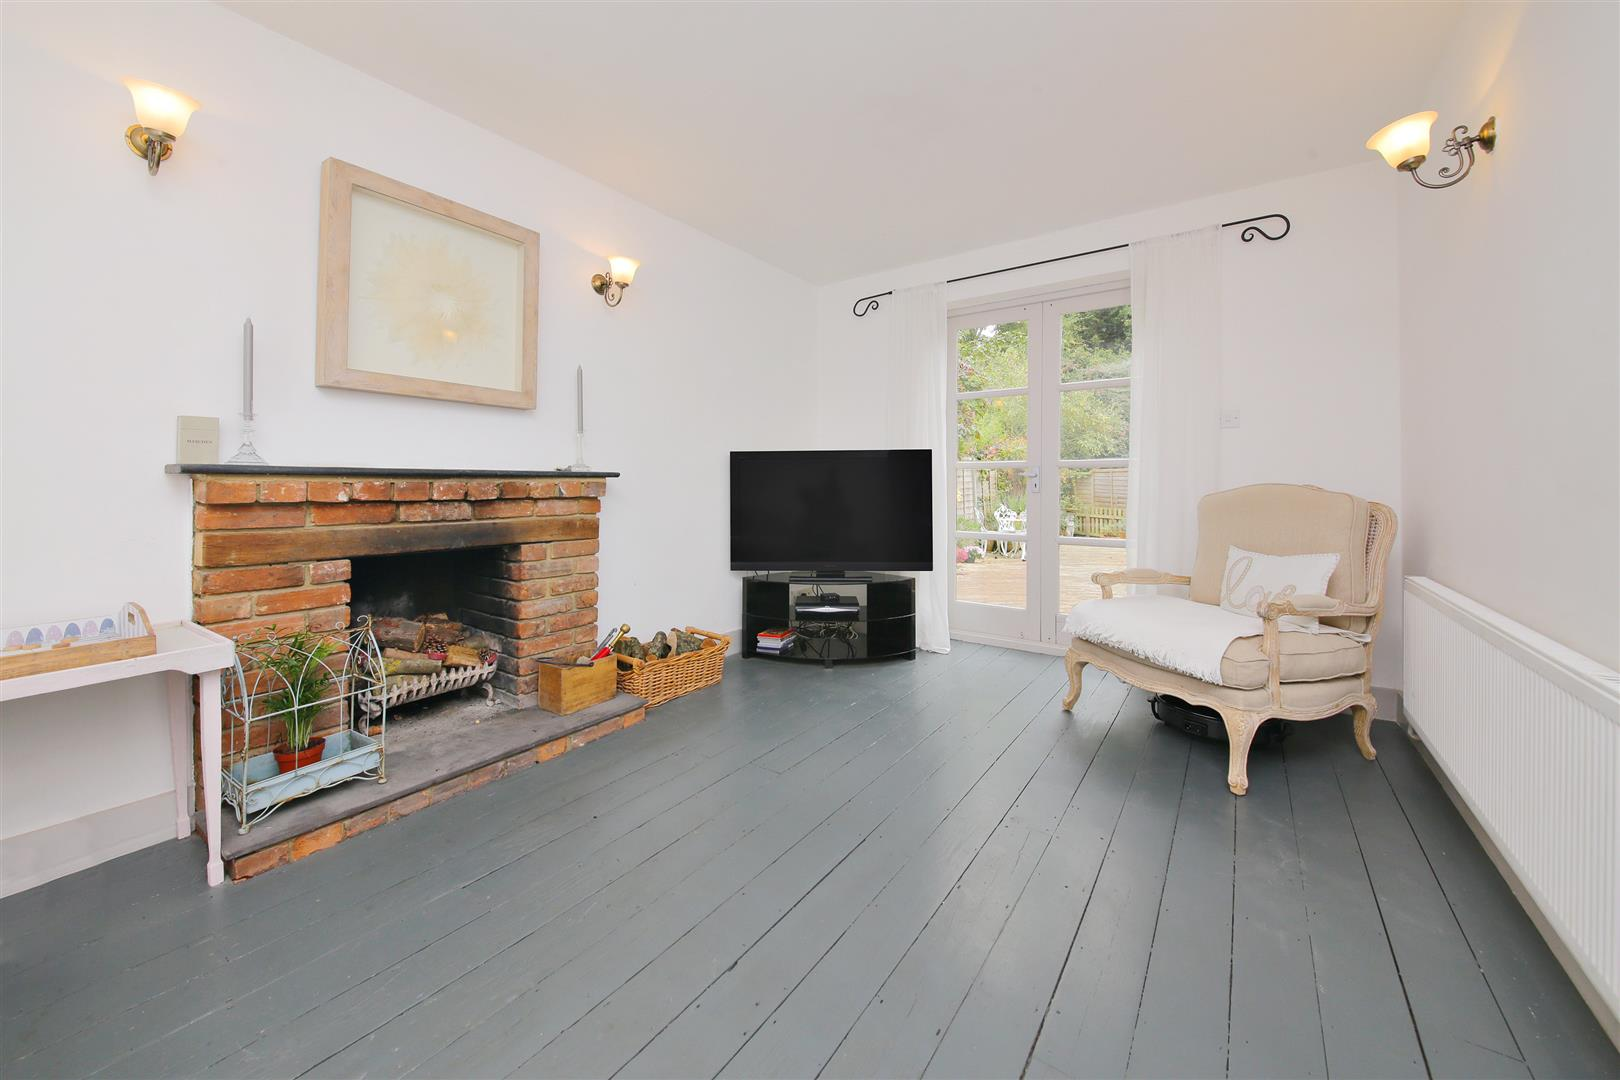 5 bed to rent in Letchmore Heath - (Property Image 5)